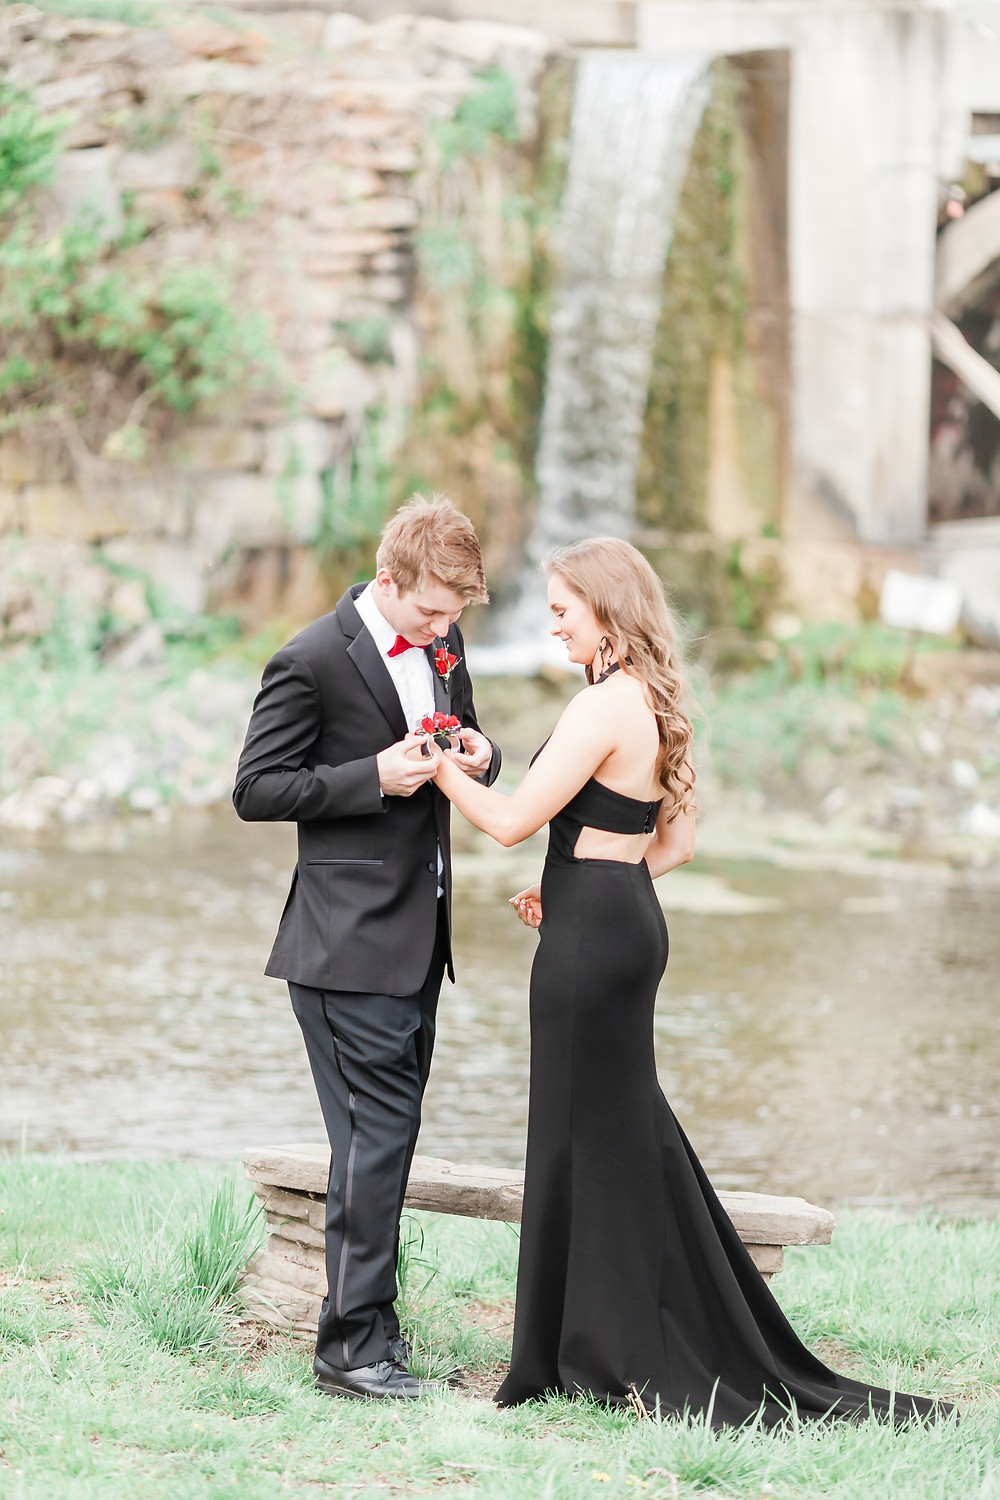 Silver Lake prom photo session 2